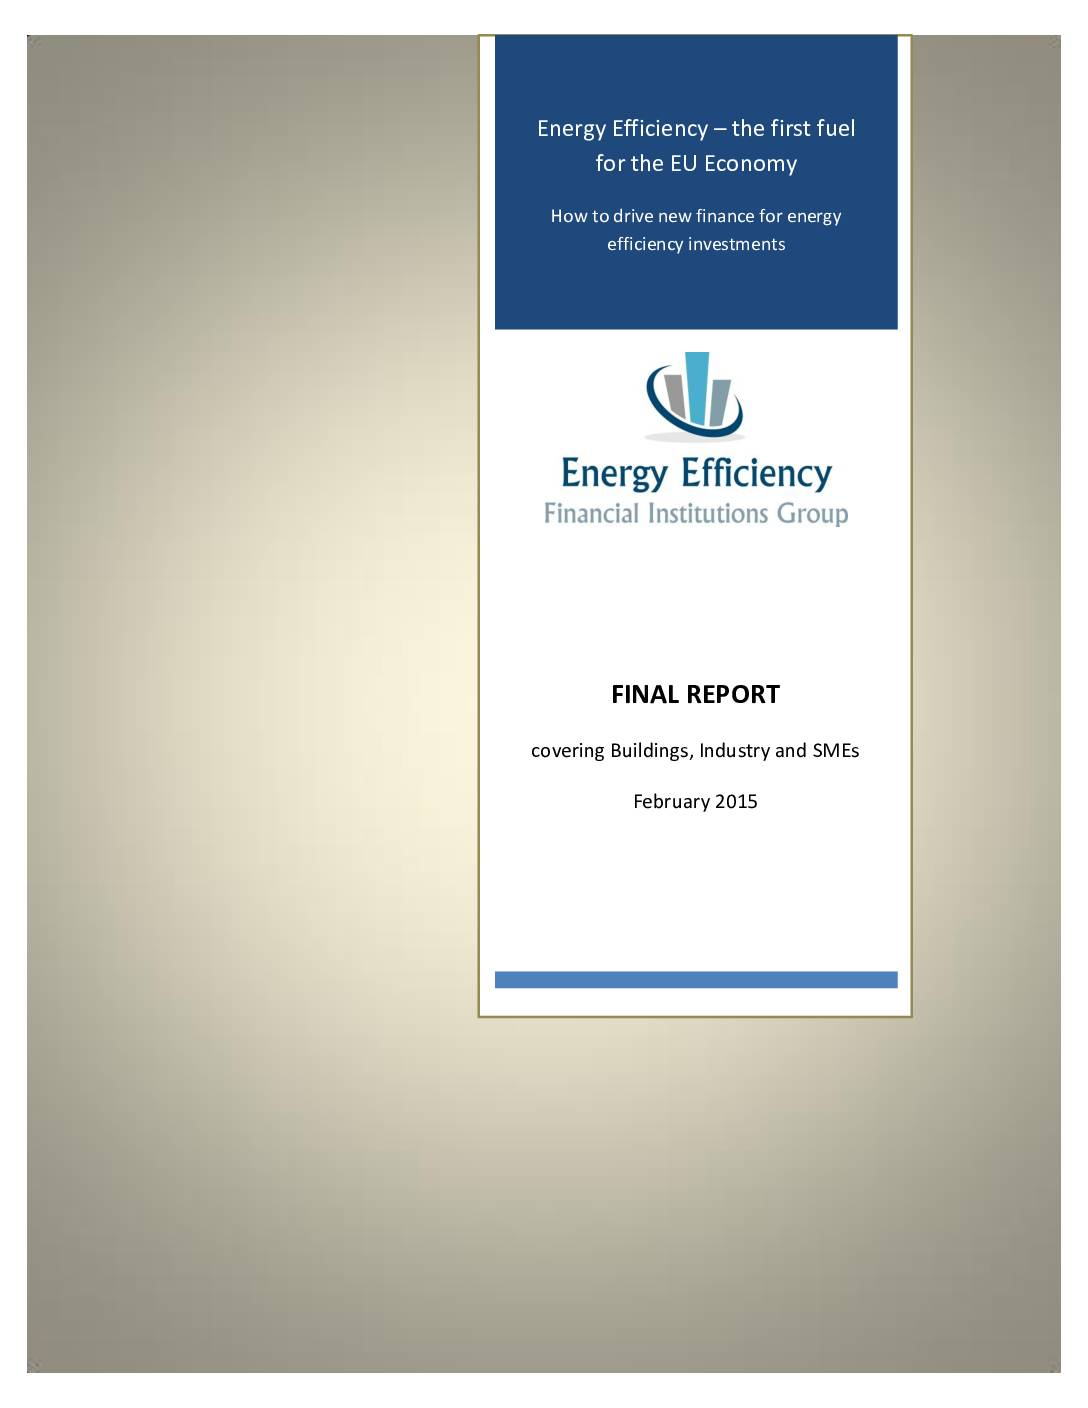 Energy Efficiency – the First Fuel for the EU Economy: How to Drive New Finance for Energy Efficiency Investments